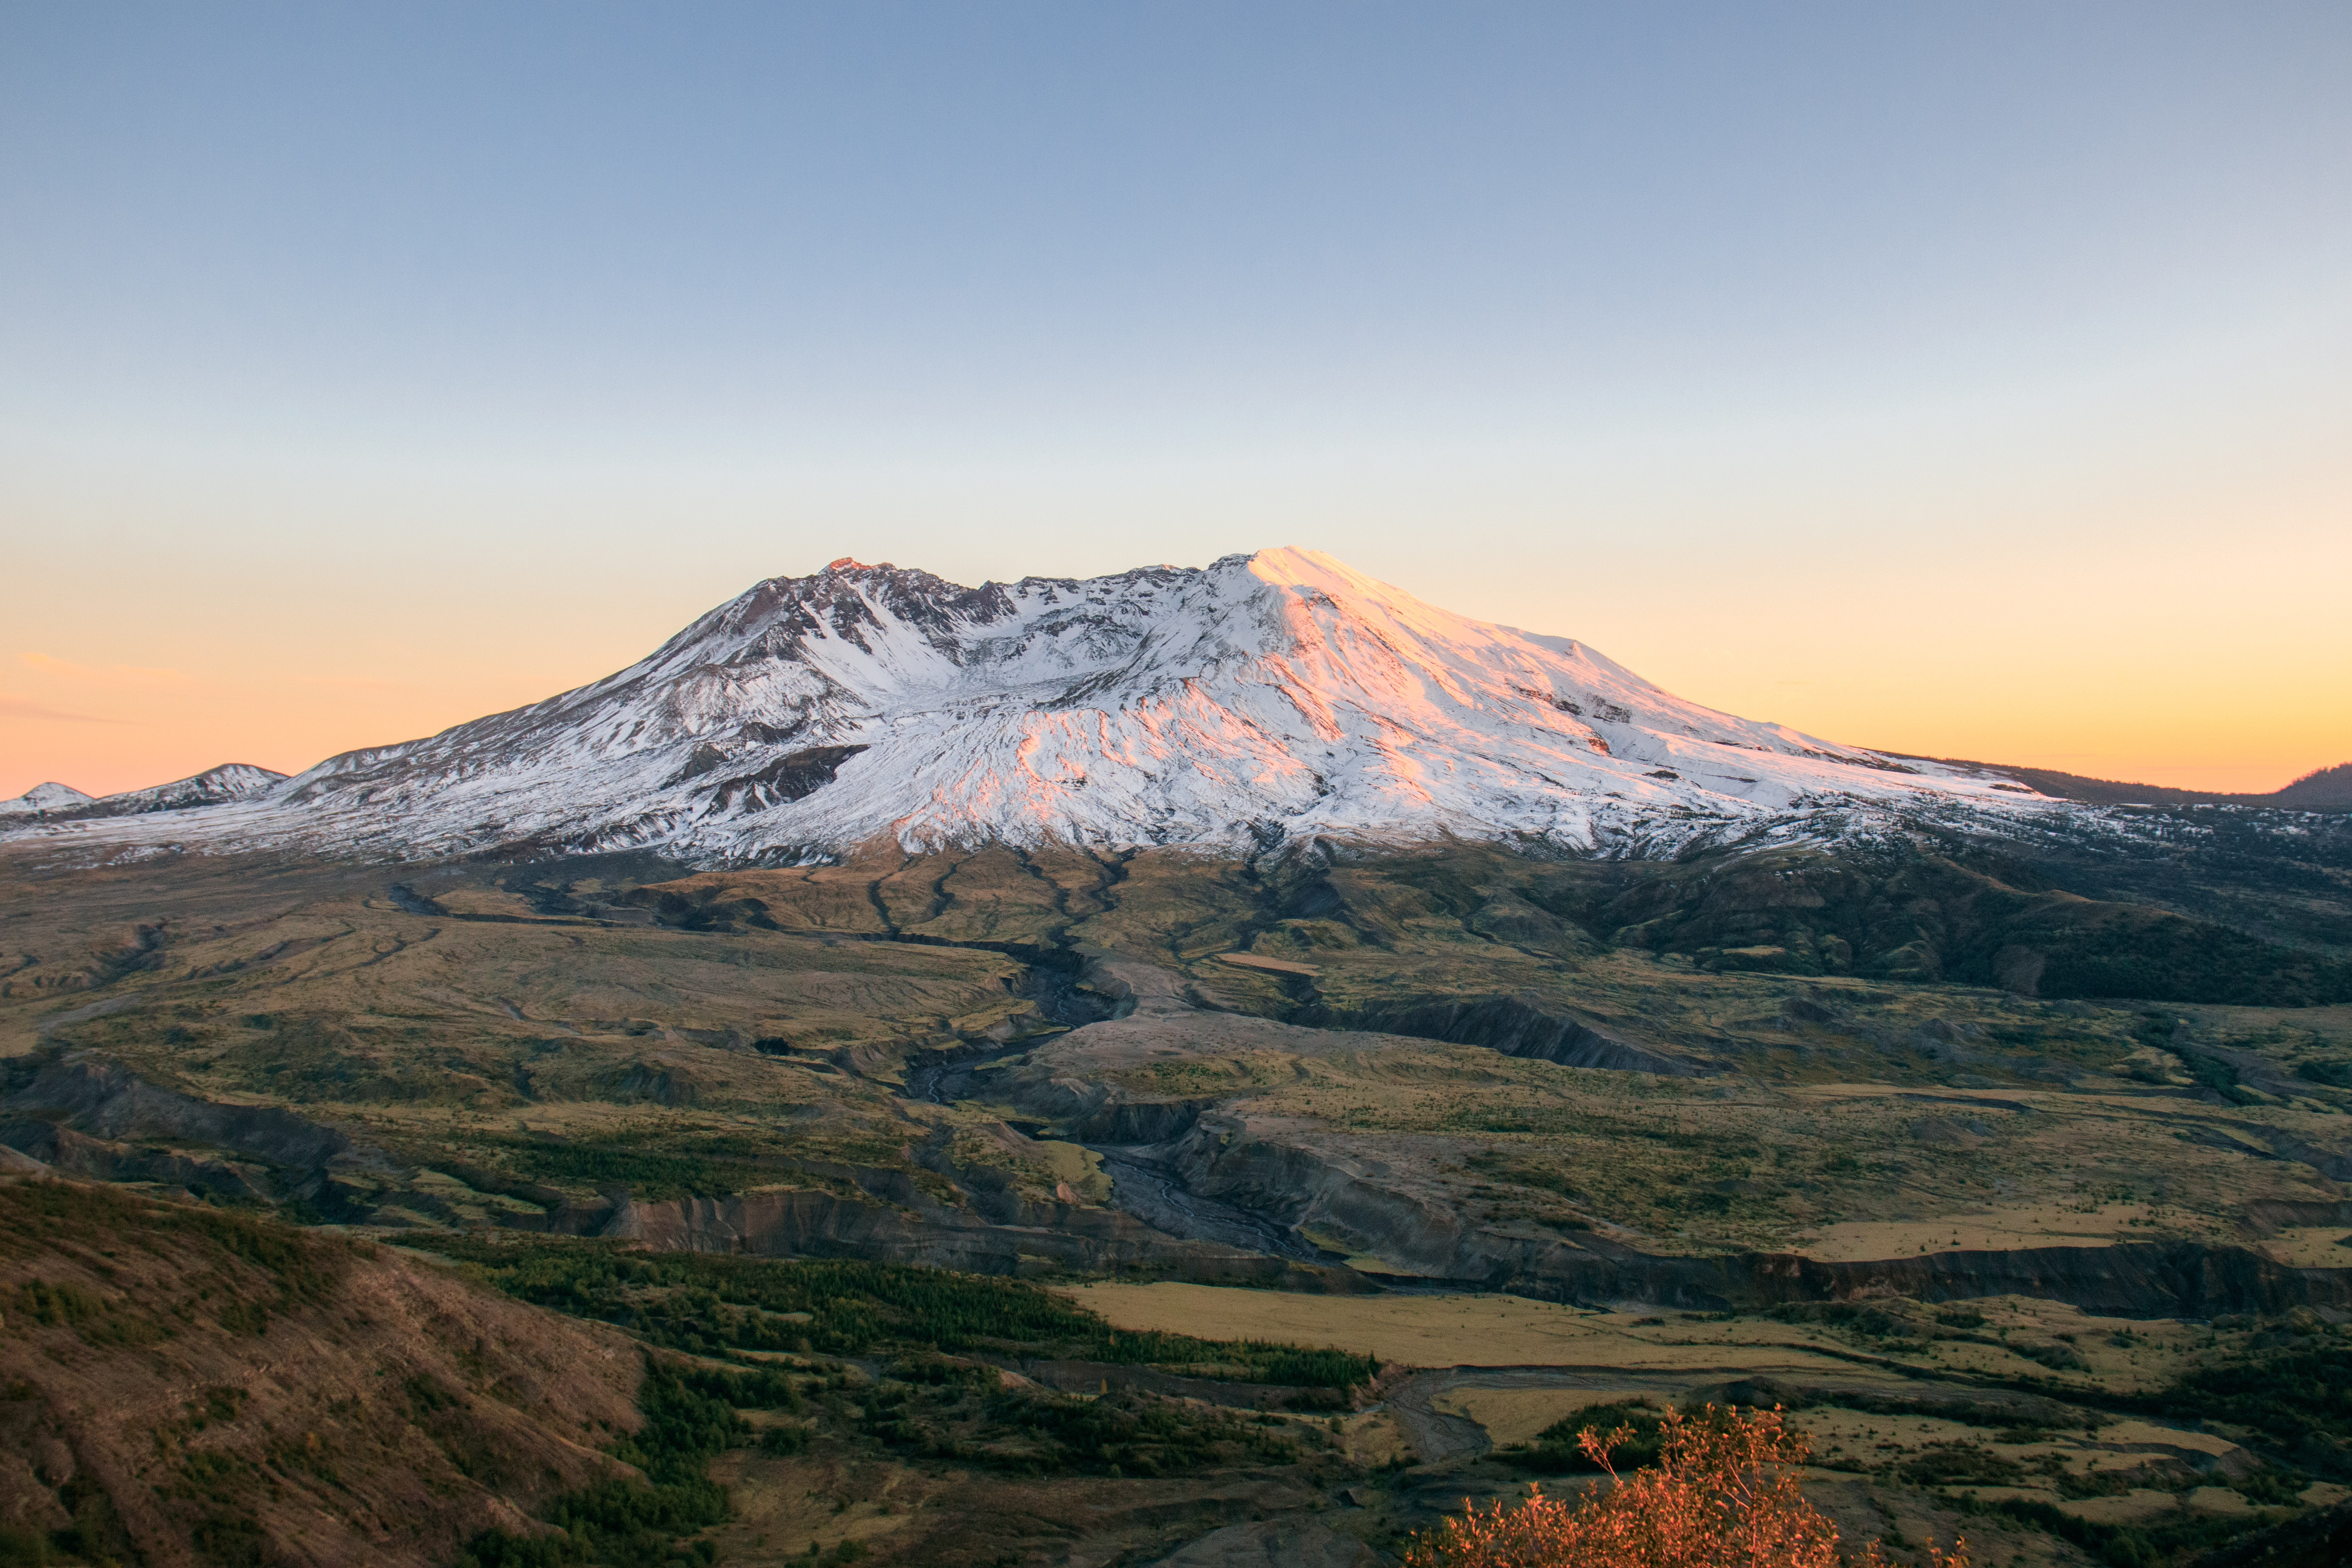 landscape photography of snow mountain during golden hour